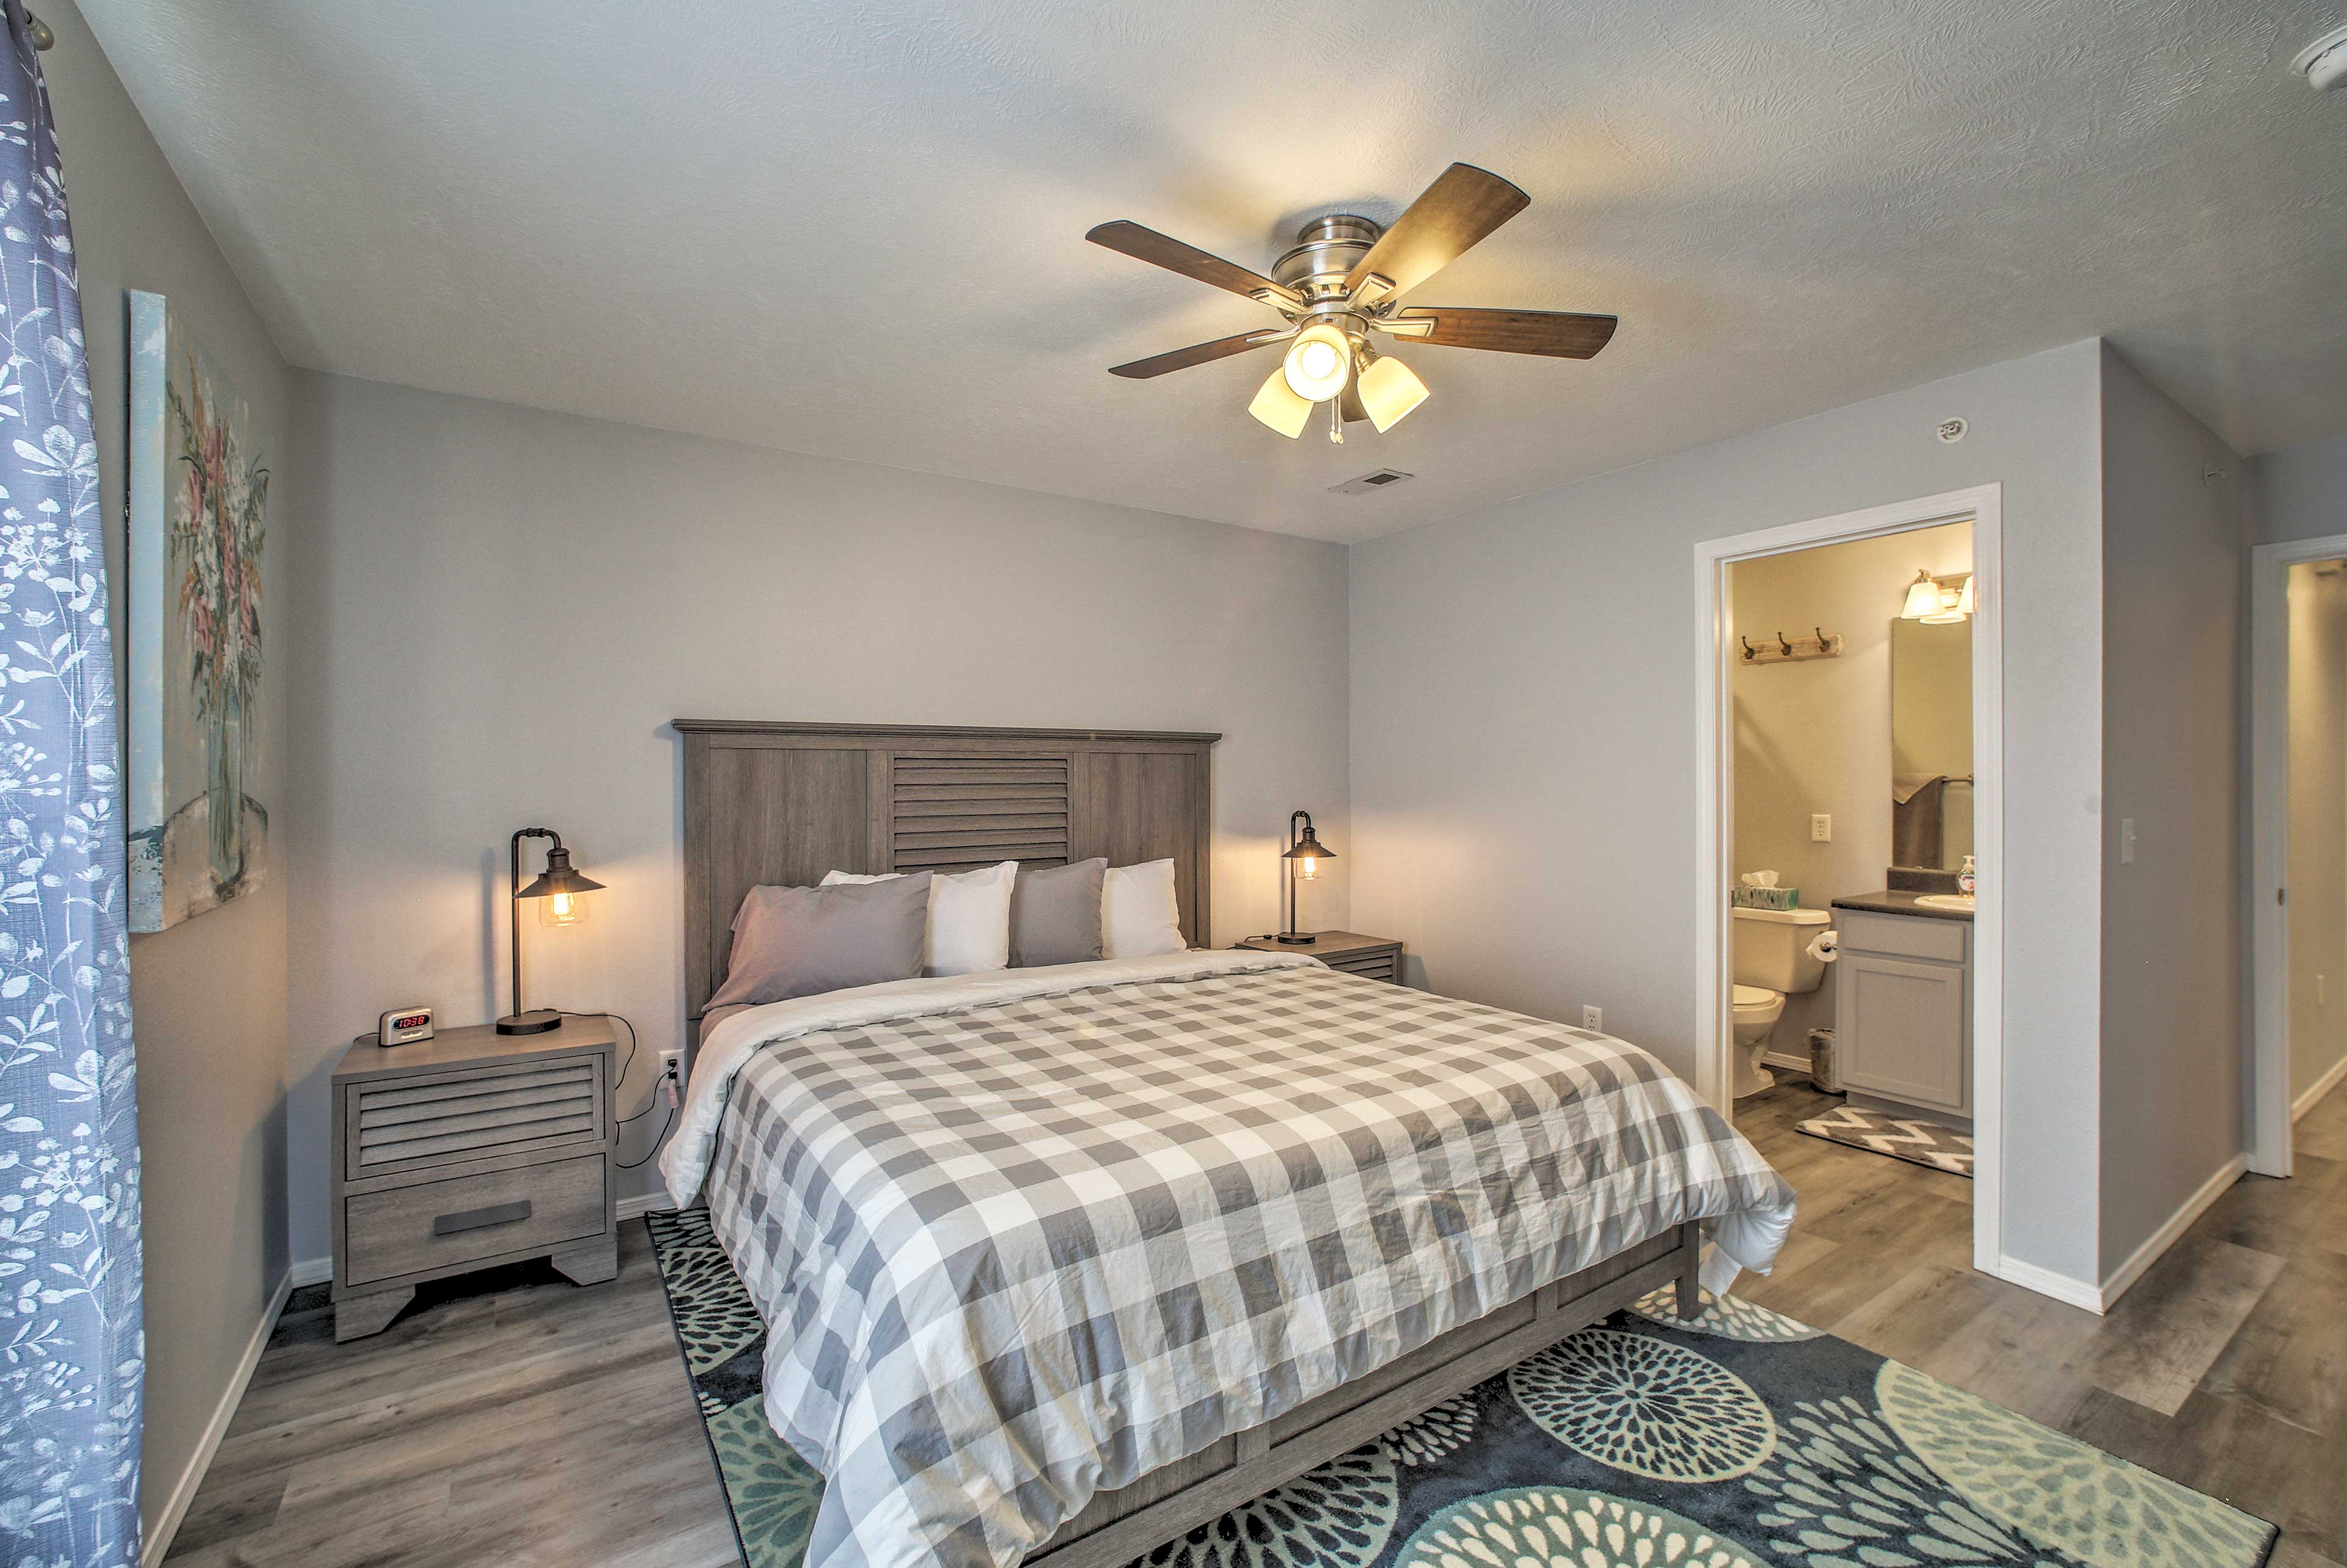 Two can claim this master suite as their sleeping sanctuary.